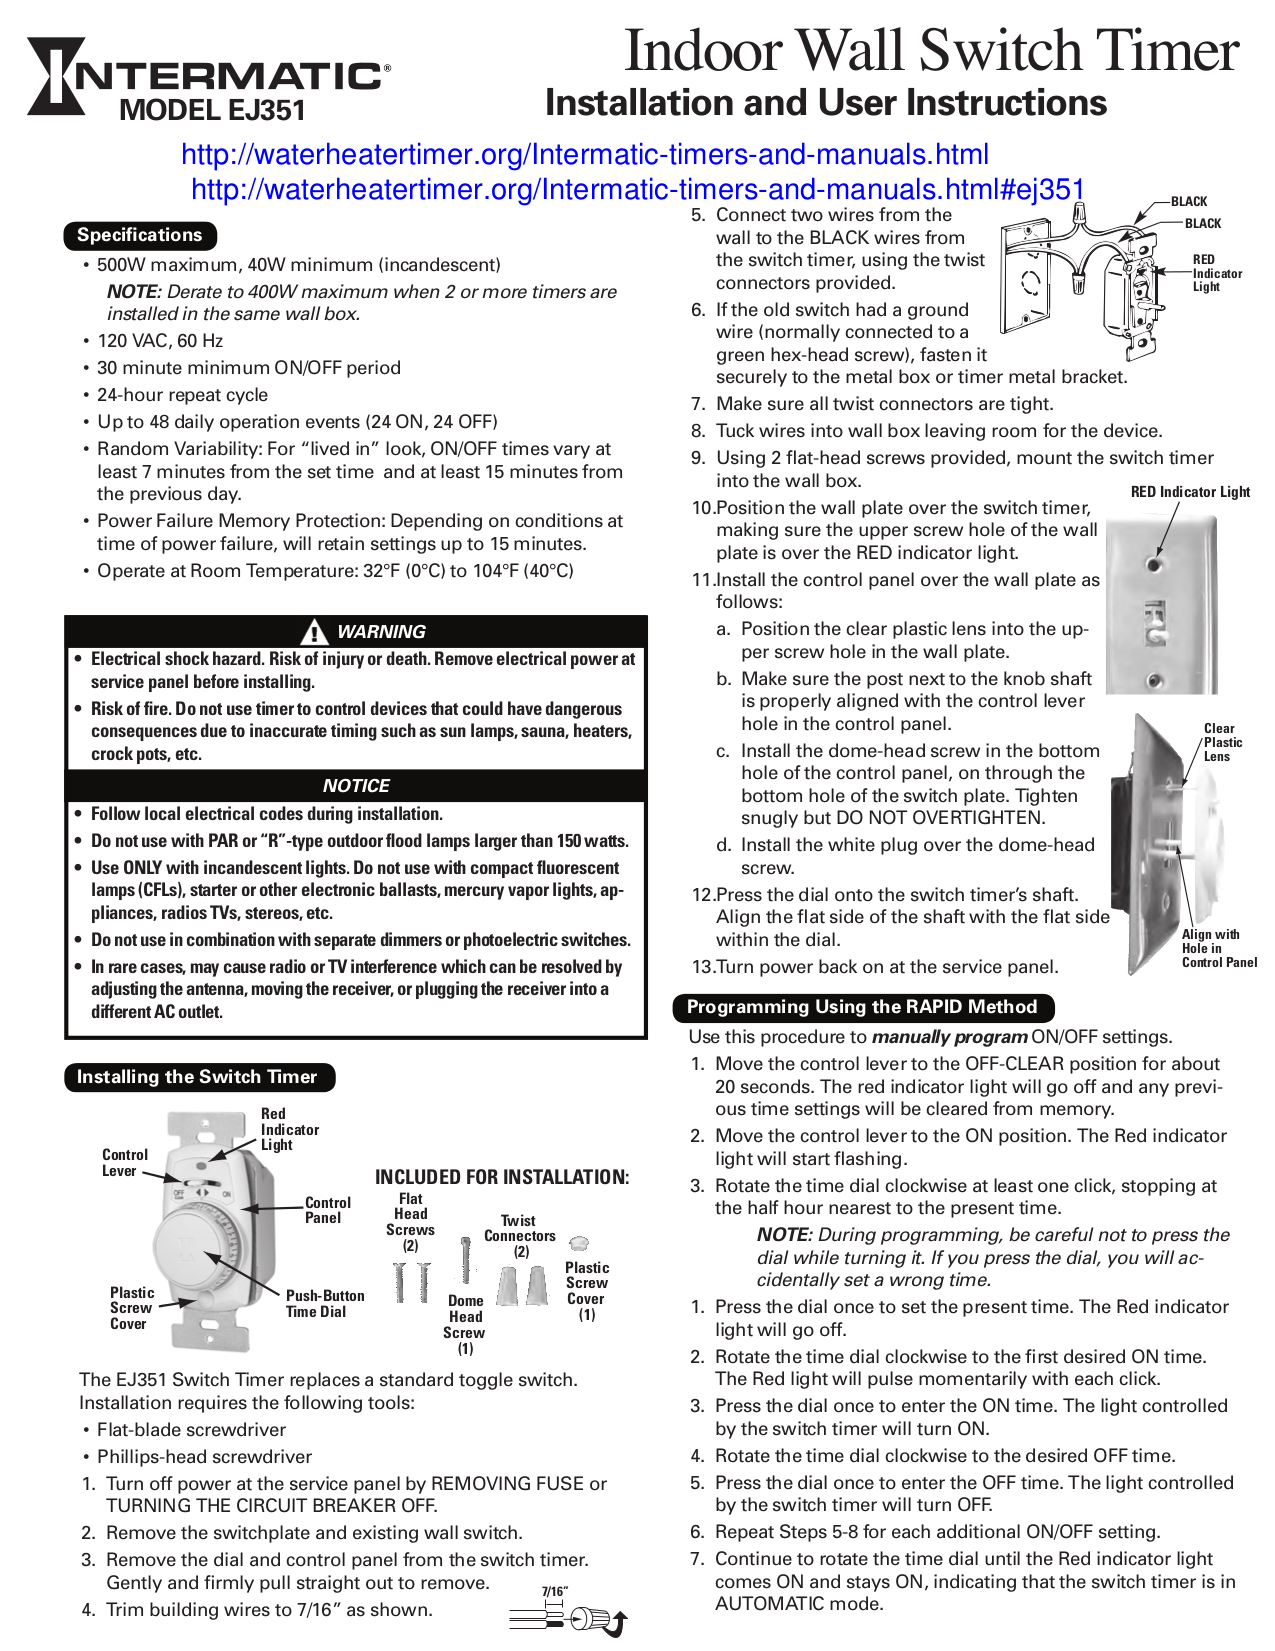 Download Free Pdf For Intermatic Ej351 Timers Other Manual Manual Guide